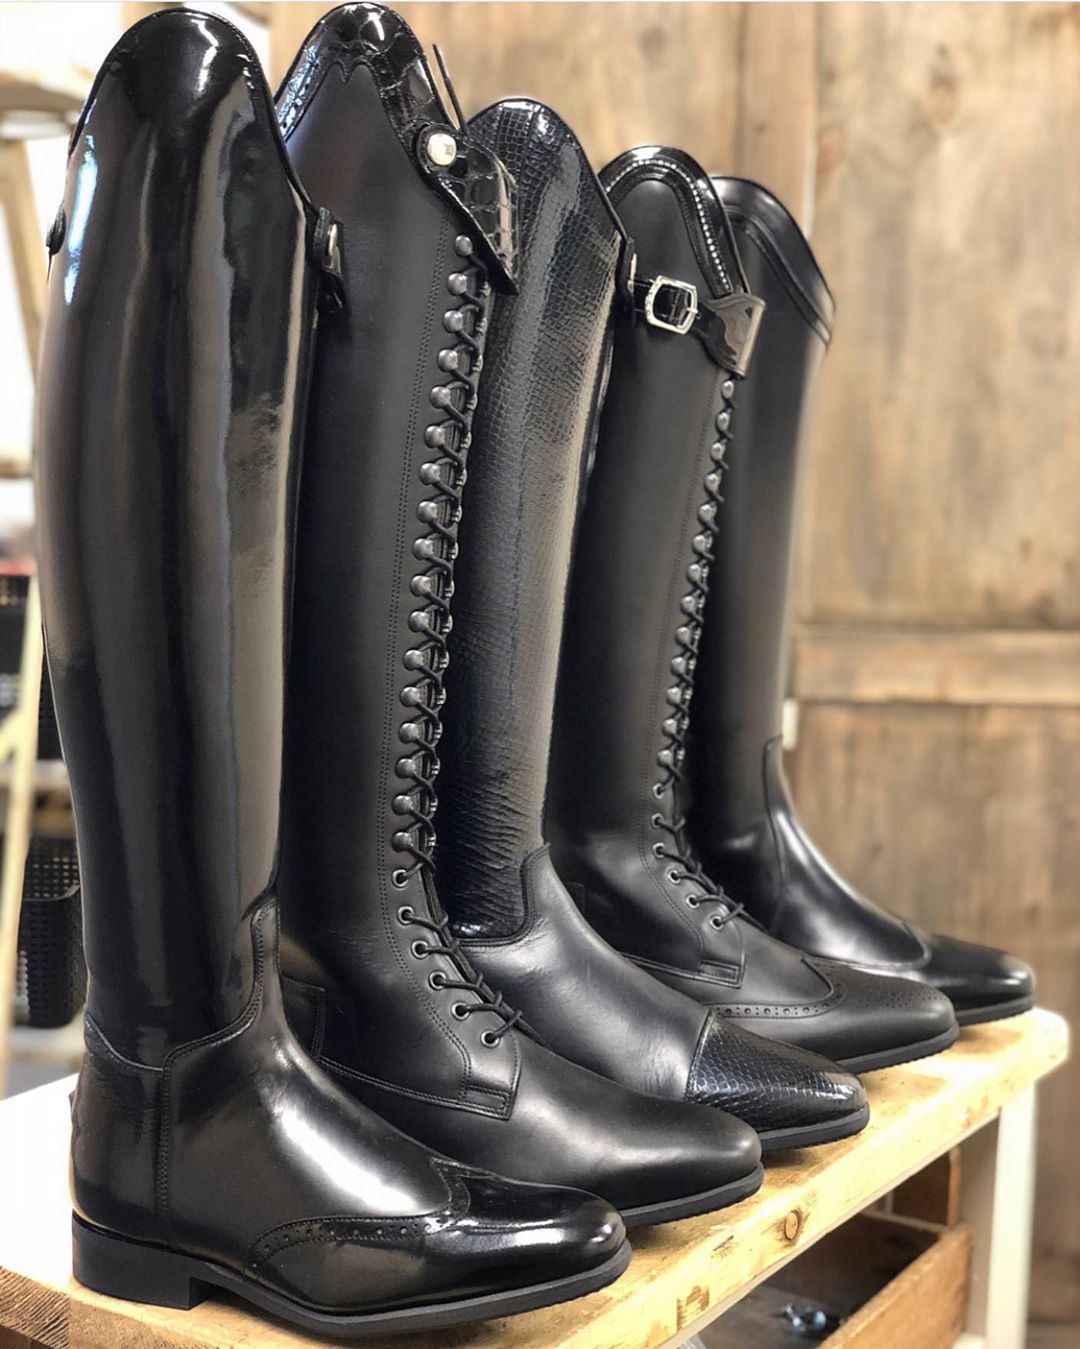 Pin by D on Celeris Long Boots | Horse riding boots, Boots